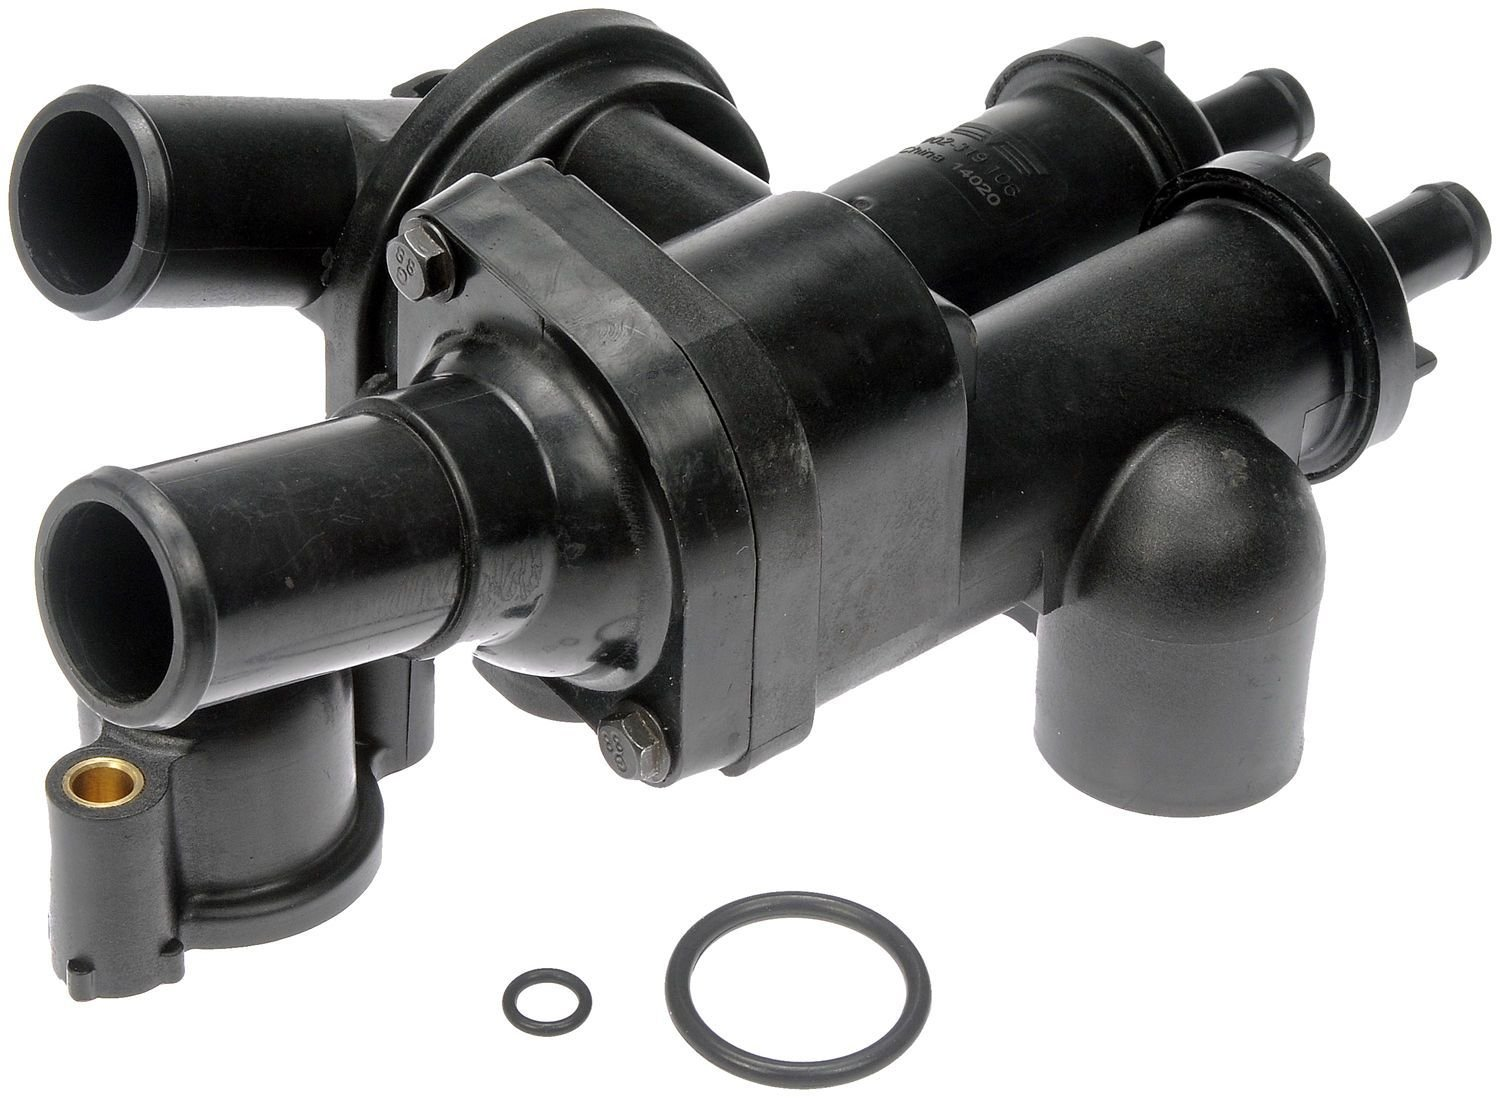 Chrysler Sebring Engine Coolant Thermostat Housing Replacement ... on chrysler firing order, chrysler powertrain control module, chrysler accessories, chrysler parts, chrysler wheels, chrysler blower resistor, chrysler timing belt, chrysler asd relay, chrysler thermostat replacement, chrysler headlights, chrysler cabin air filter replacement, chrysler power steering fluid, chrysler heater problems, chrysler heater core replacement, chrysler refrigerator, chrysler fuel filter location, chrysler pcv valve, chrysler evap system,